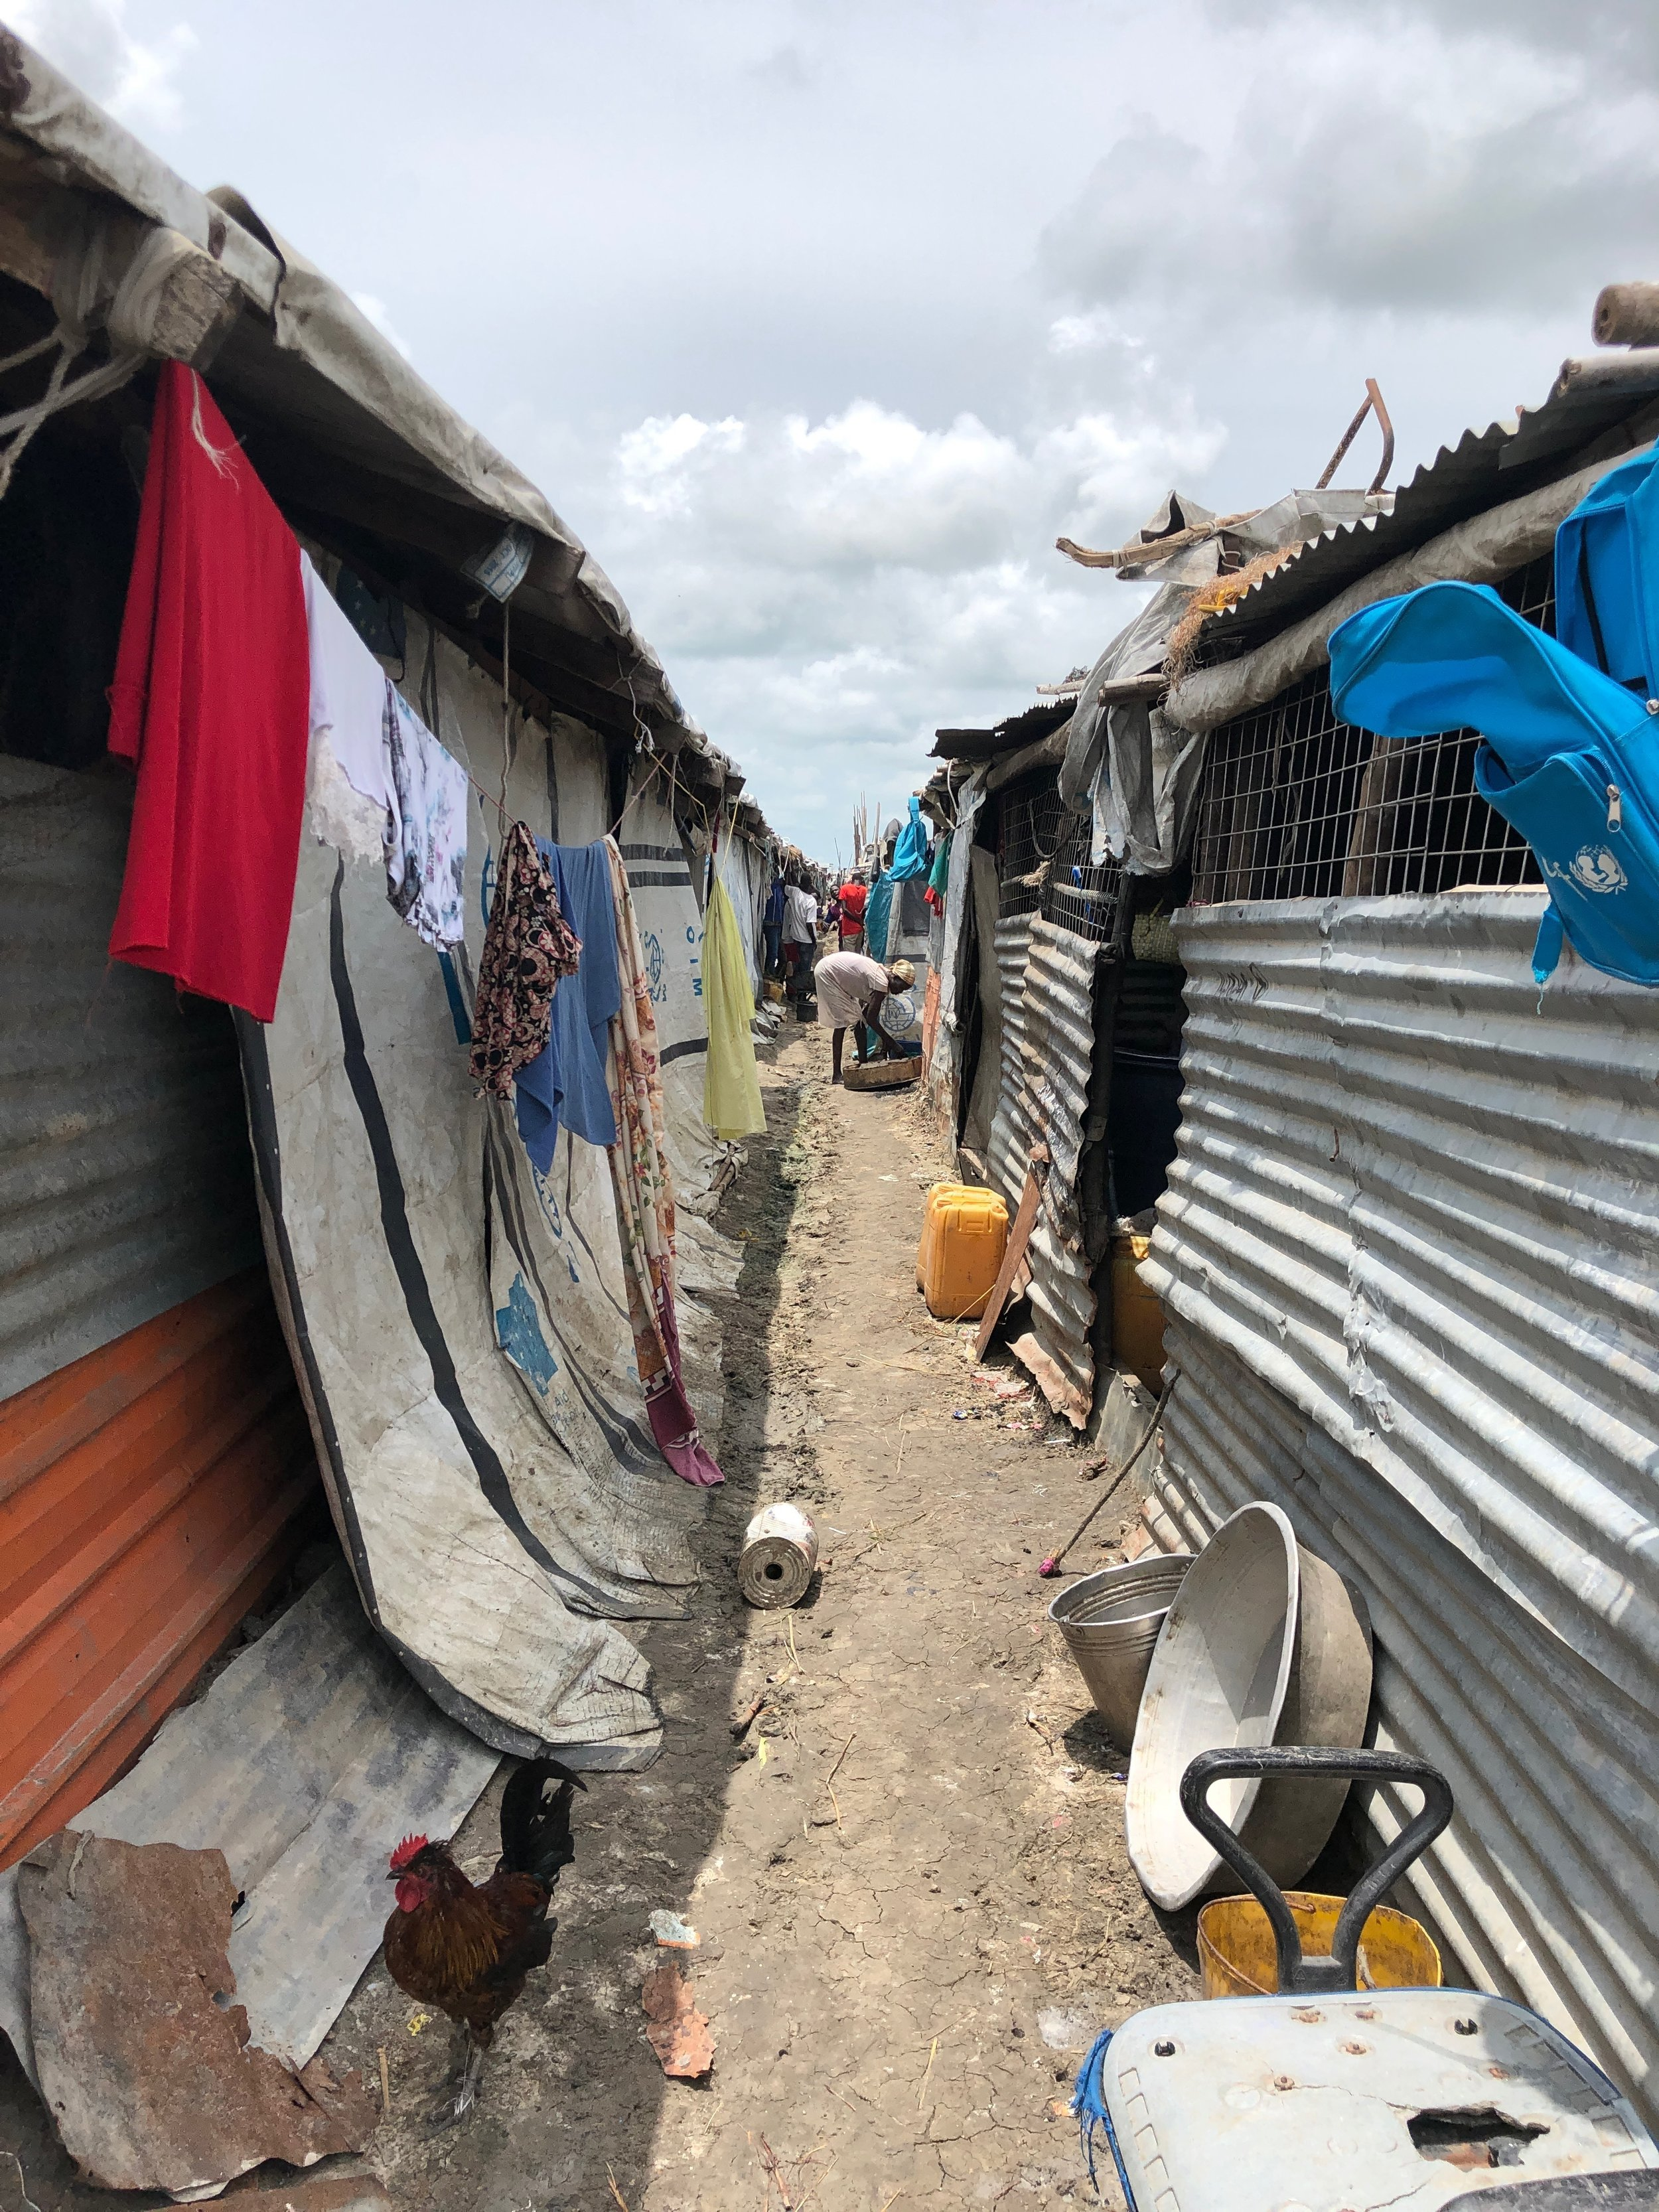 After visiting Juba, the Refugees International team traveled to Malakal. Inside the POC, people are living in overcrowded, cramped shelters.